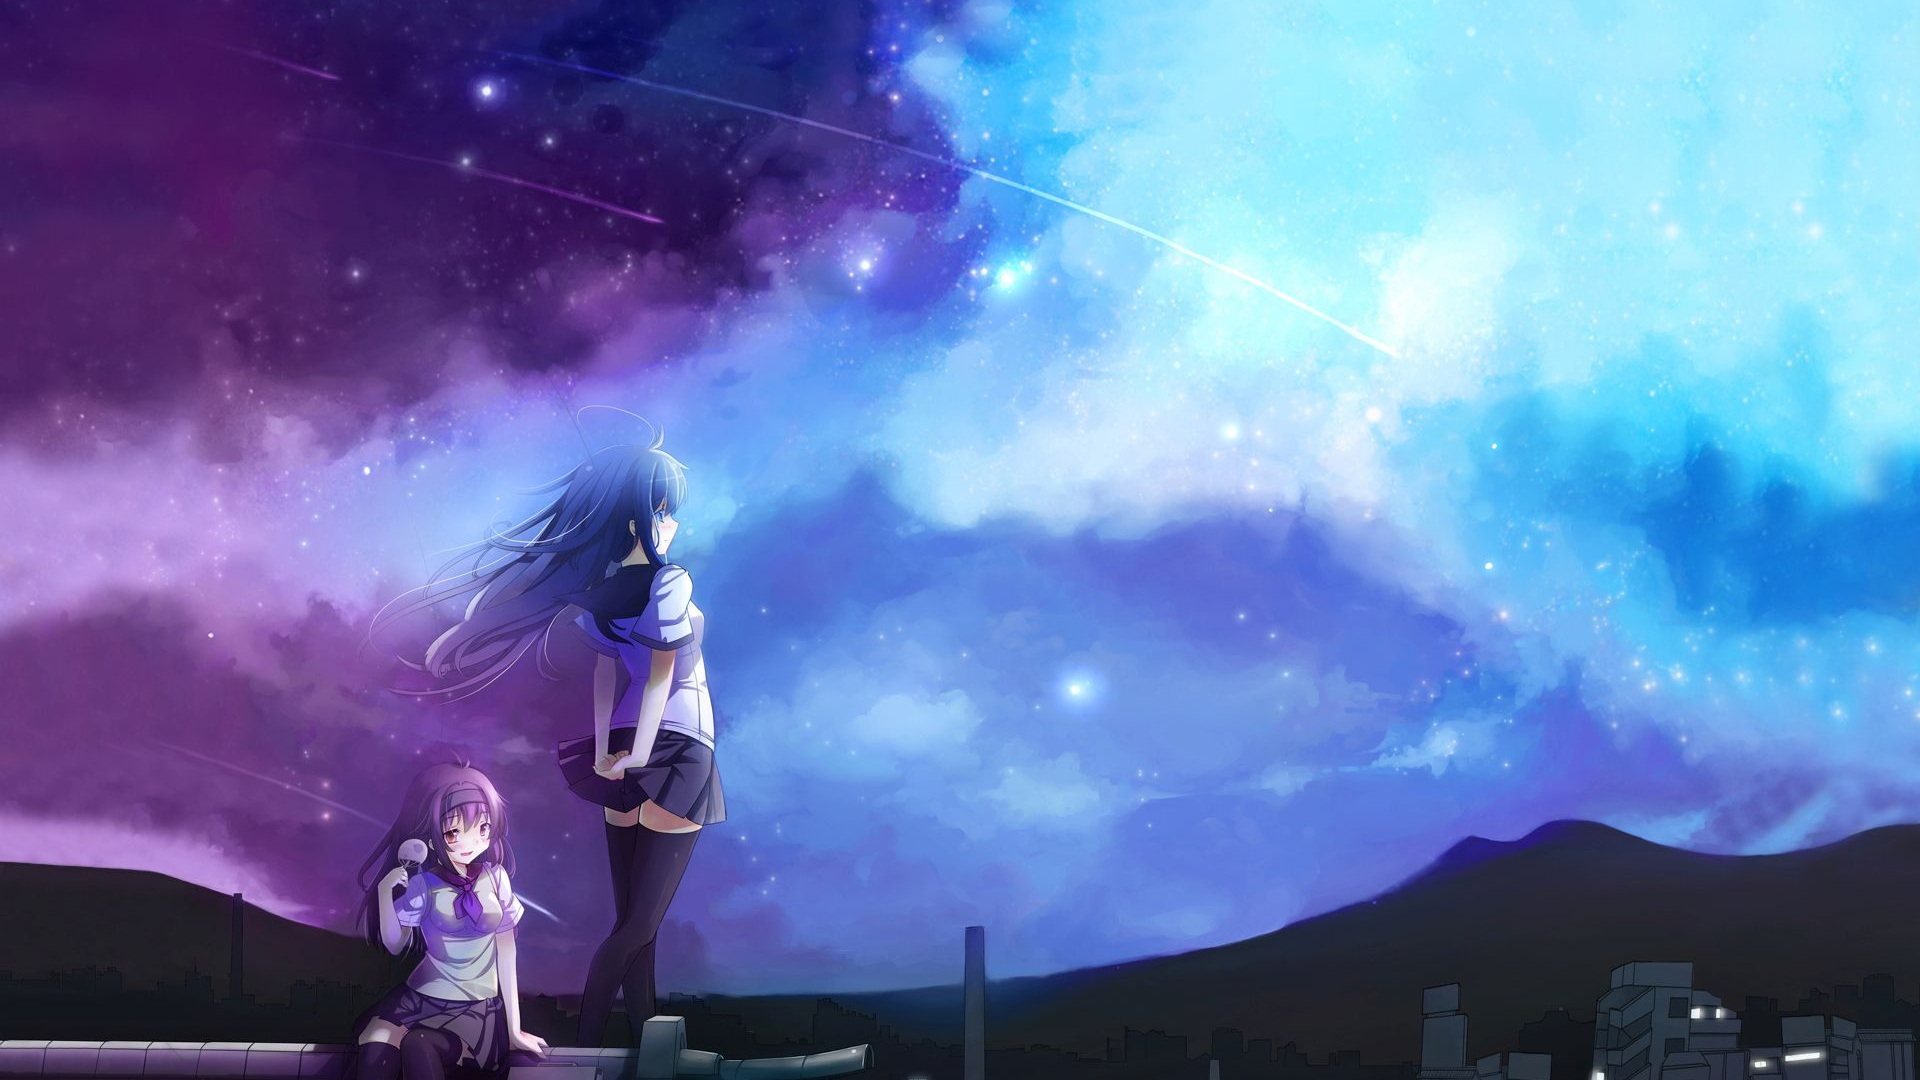 Free Download Girl Looking At The Sky Wallpaper 1204997 1920x1200